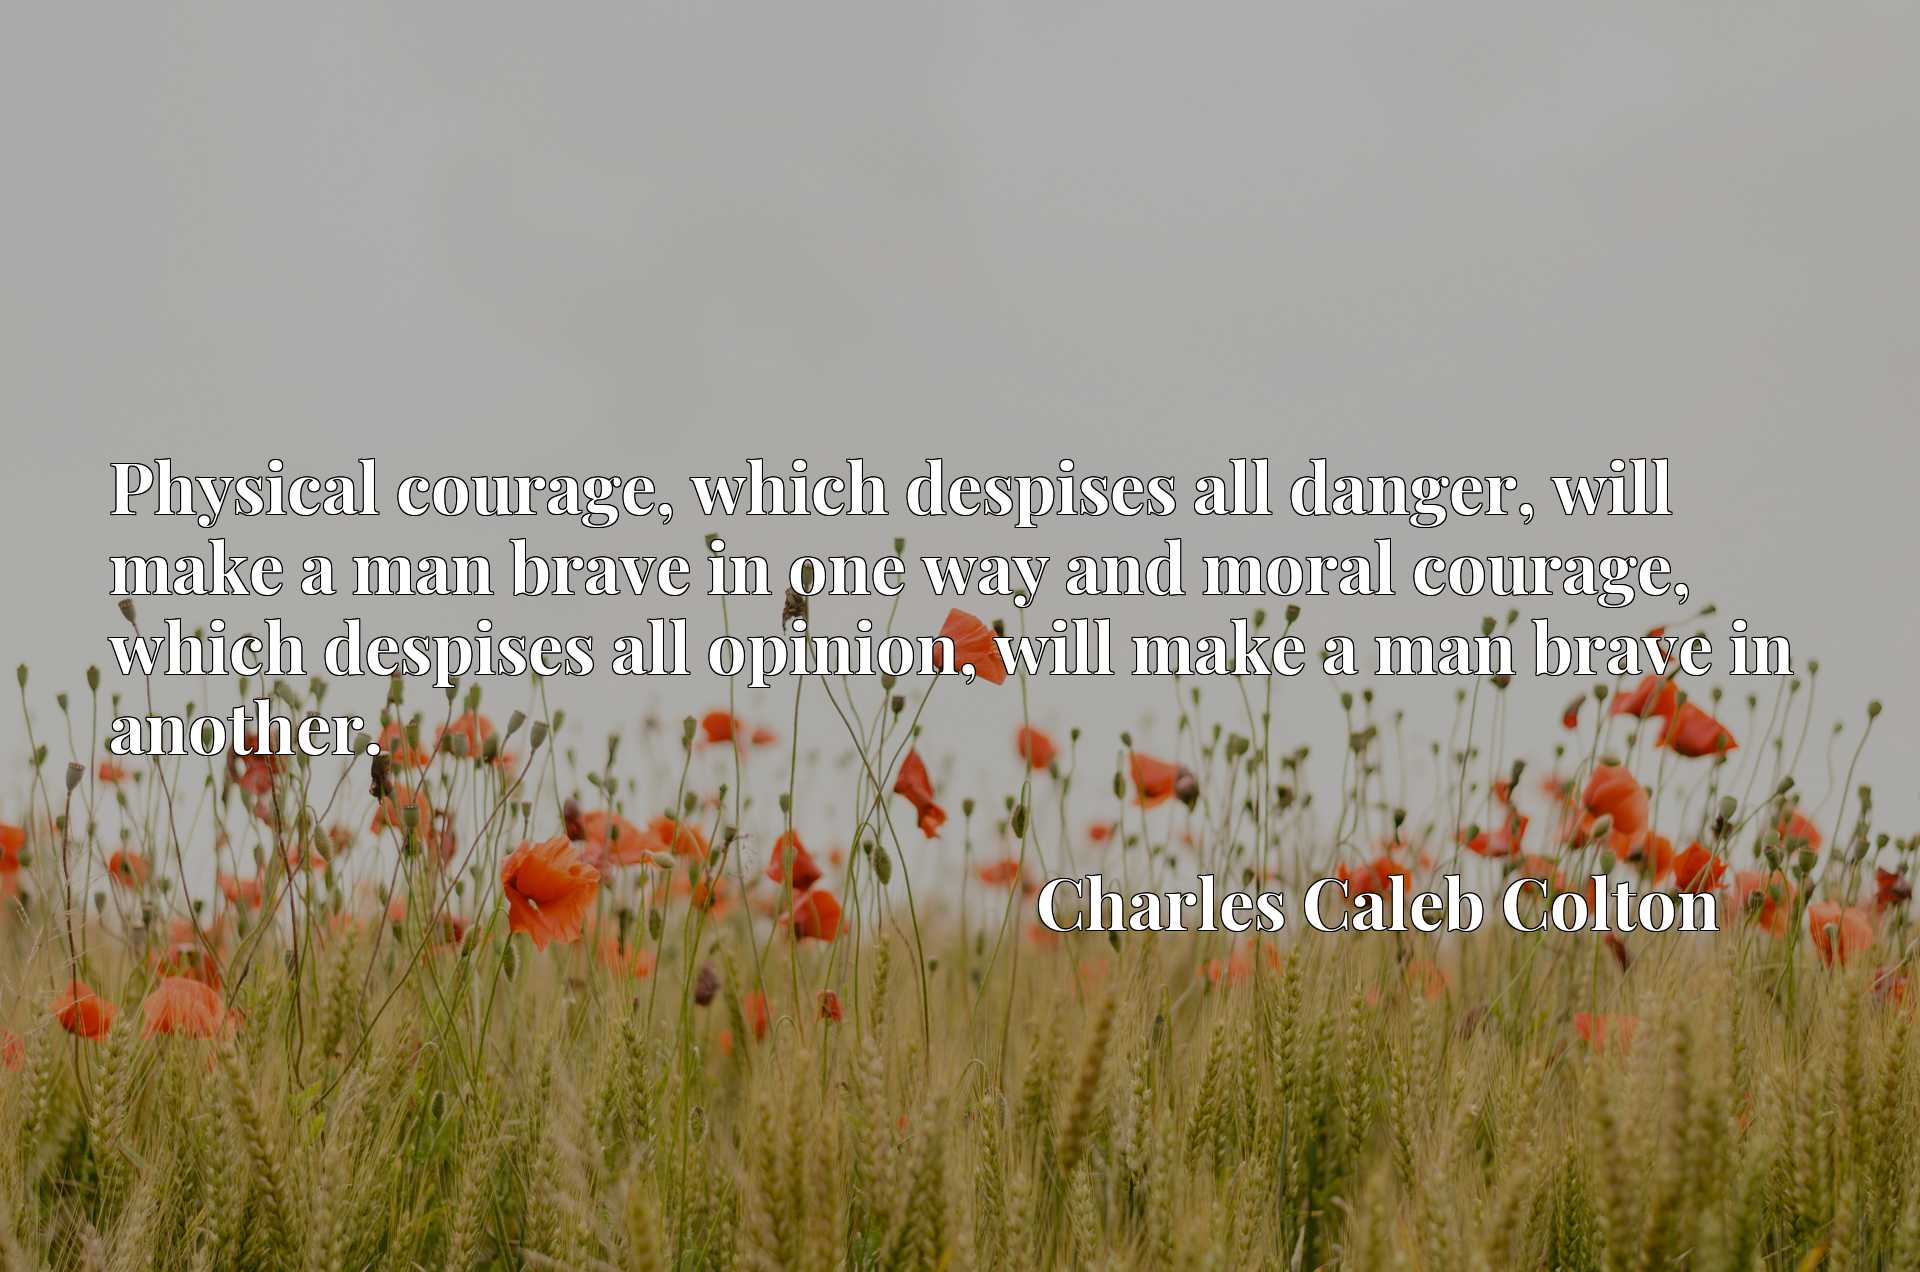 Physical courage, which despises all danger, will make a man brave in one way and moral courage, which despises all opinion, will make a man brave in another.